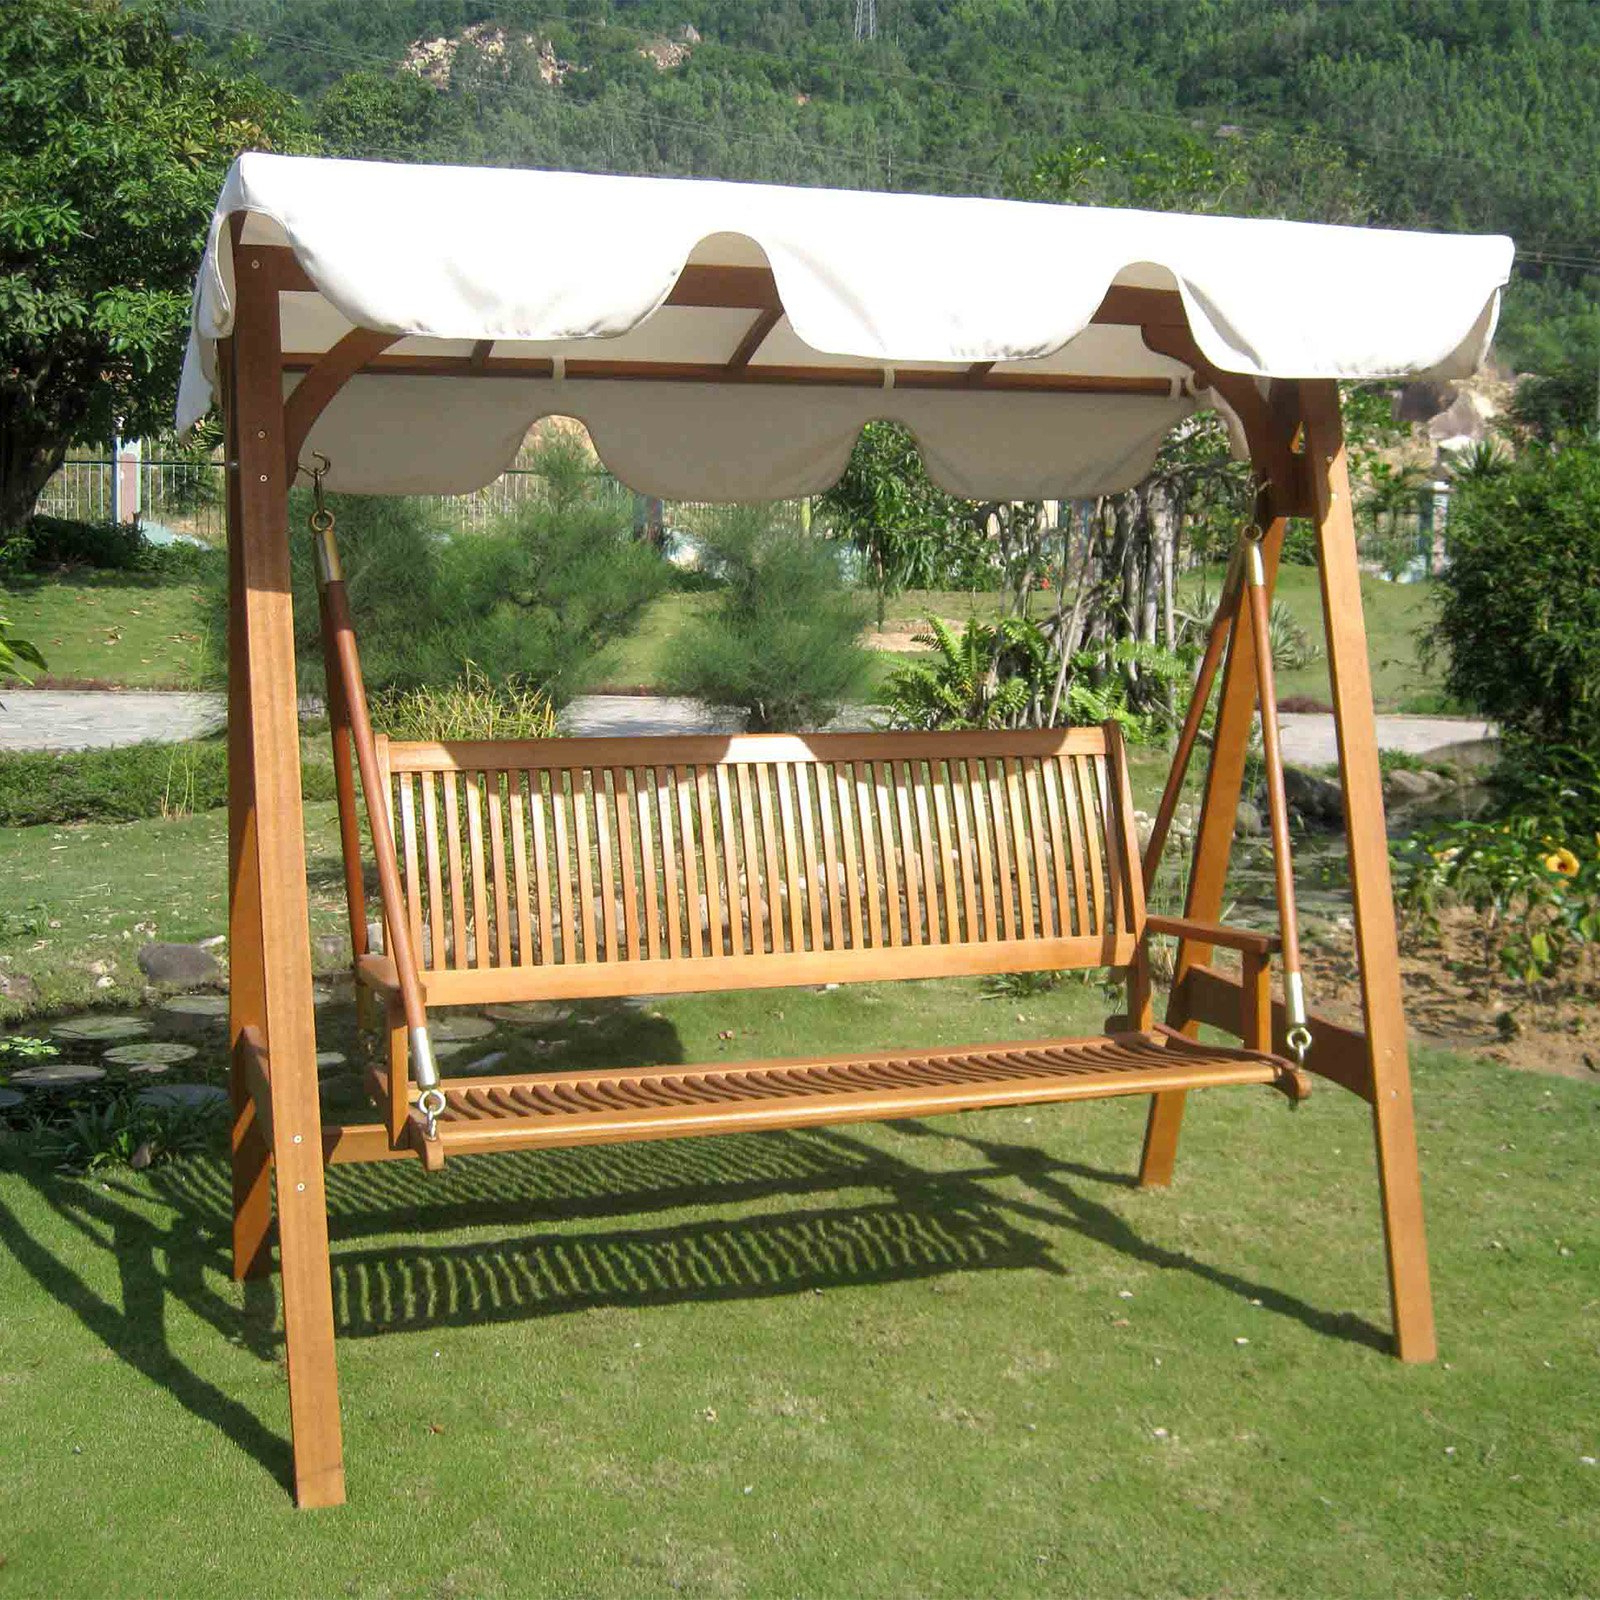 Best And Newest Hammock Patio Backyard Stand – Recognizealeader Pertaining To Patio Gazebo Porch Swings (Gallery 14 of 30)